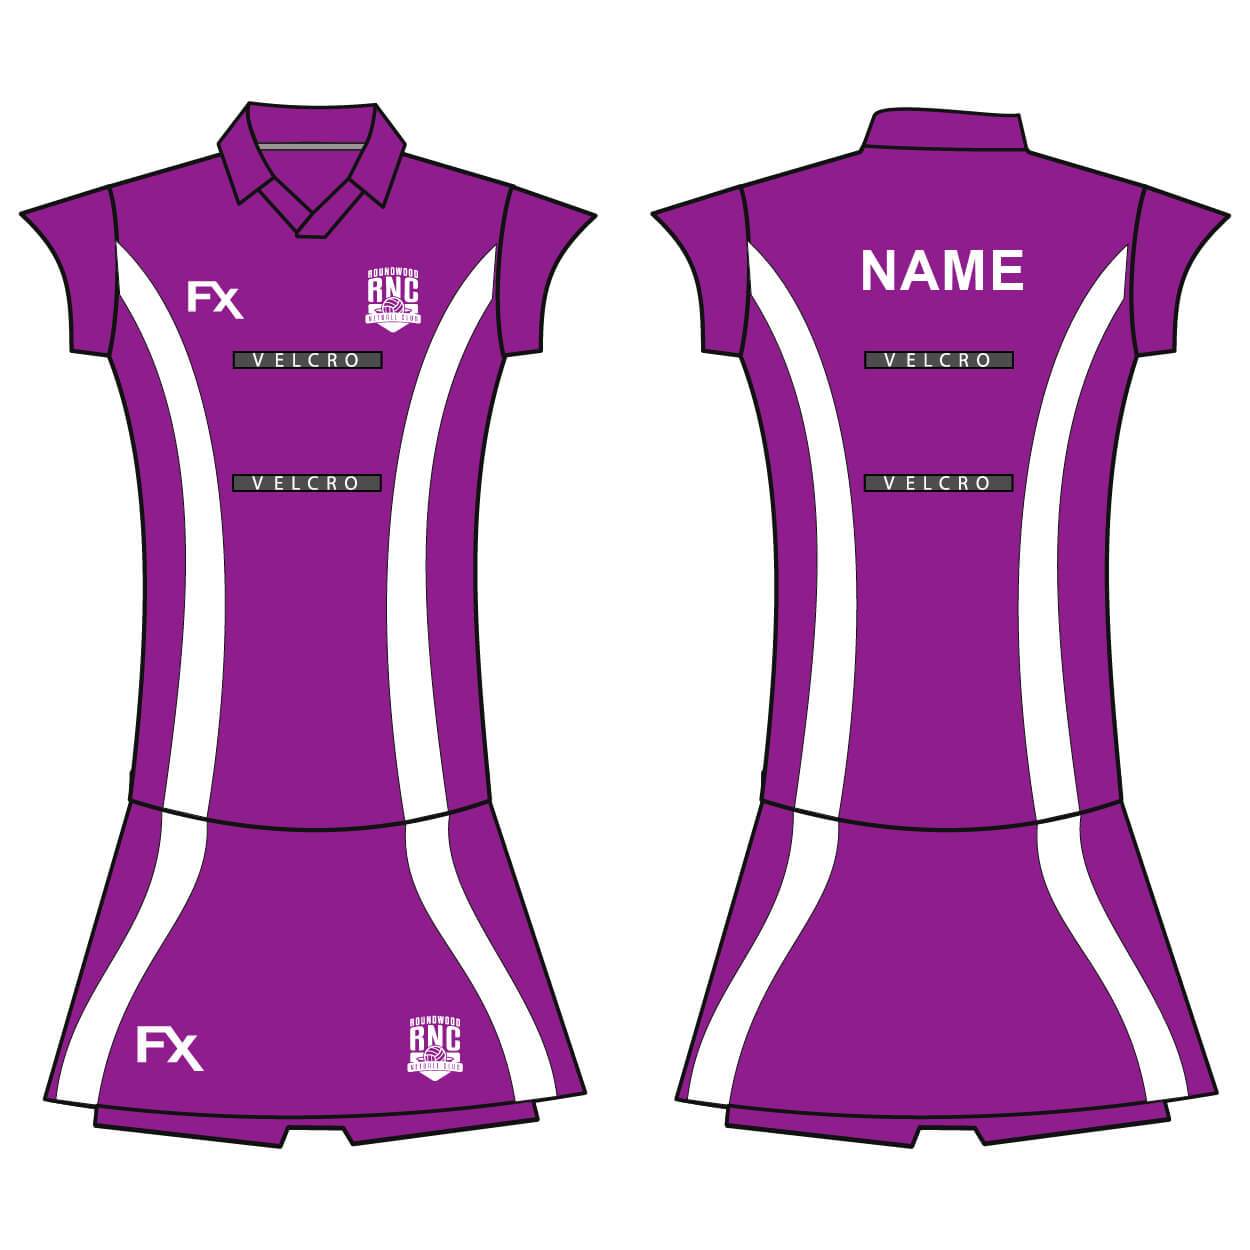 roundwood netball club_Netball Shirt and Skort